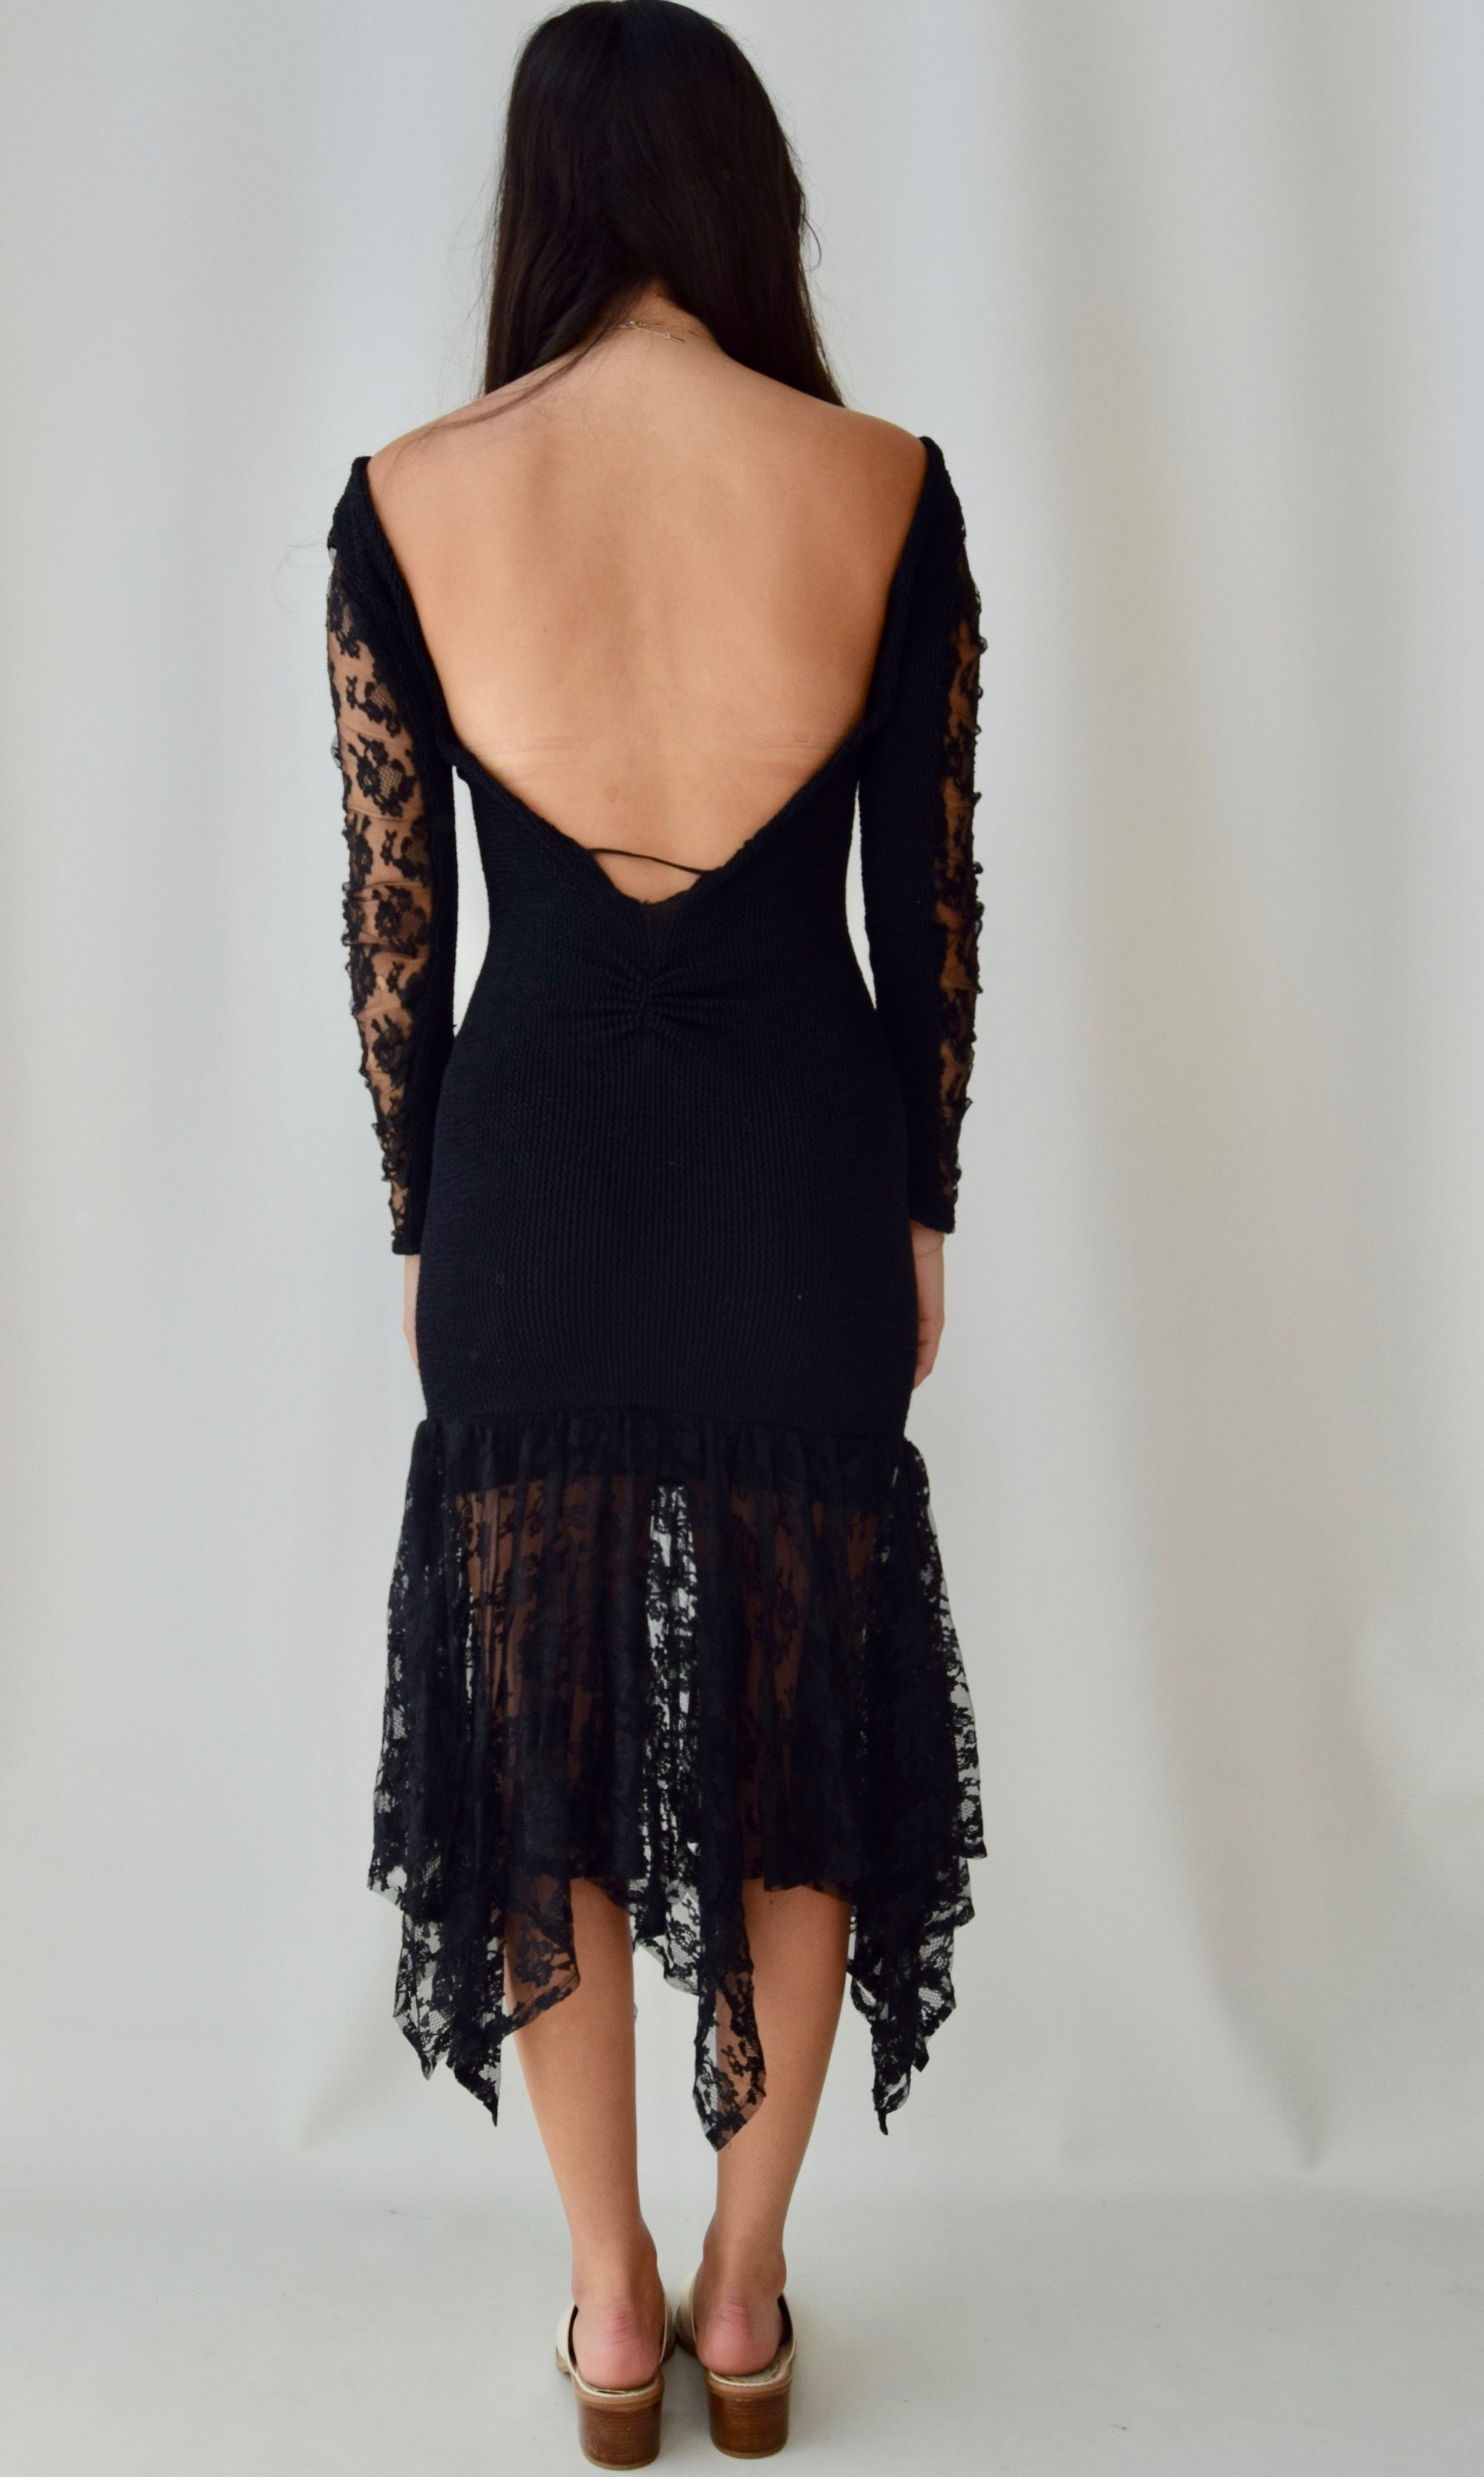 90's Black Flamenco Lace Dress